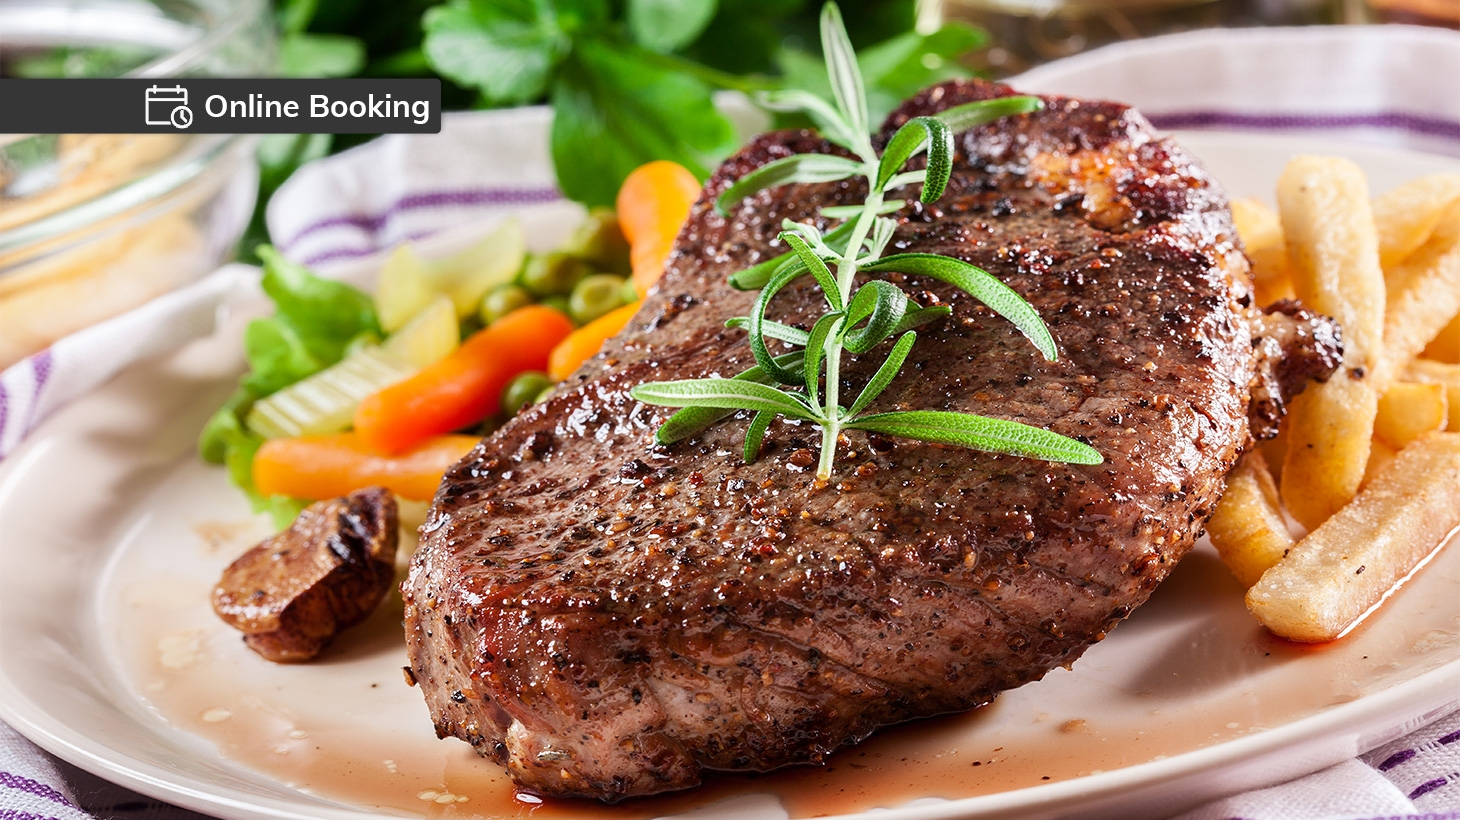 Sirloin steak served with chips and salad